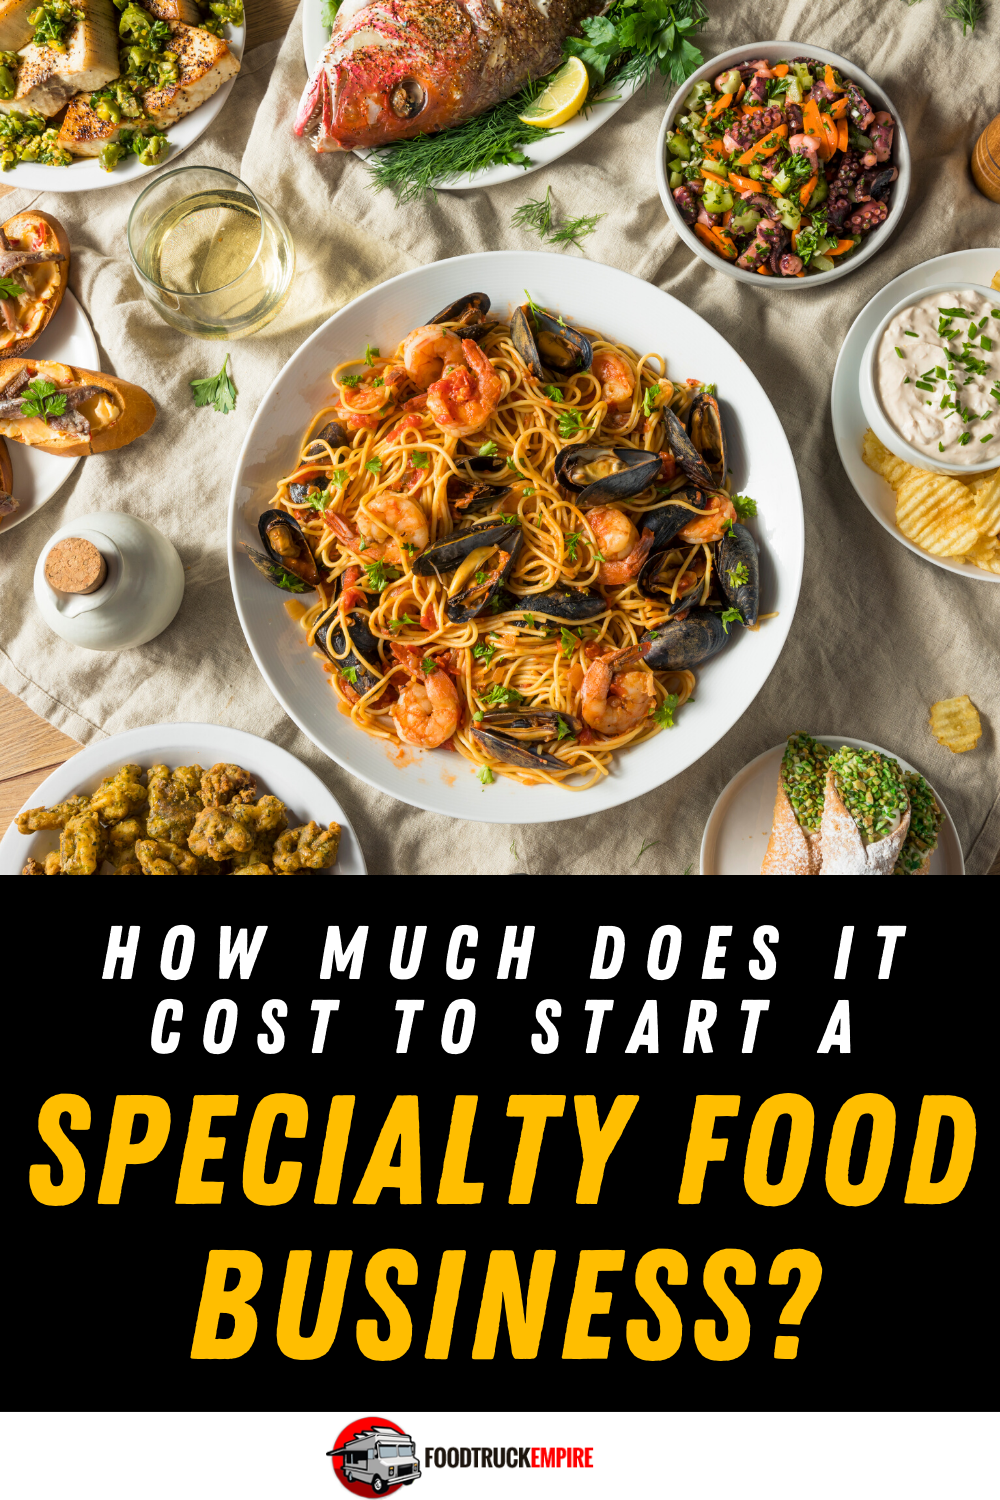 How Much Does It Cost to Start a Specialty Food Business?